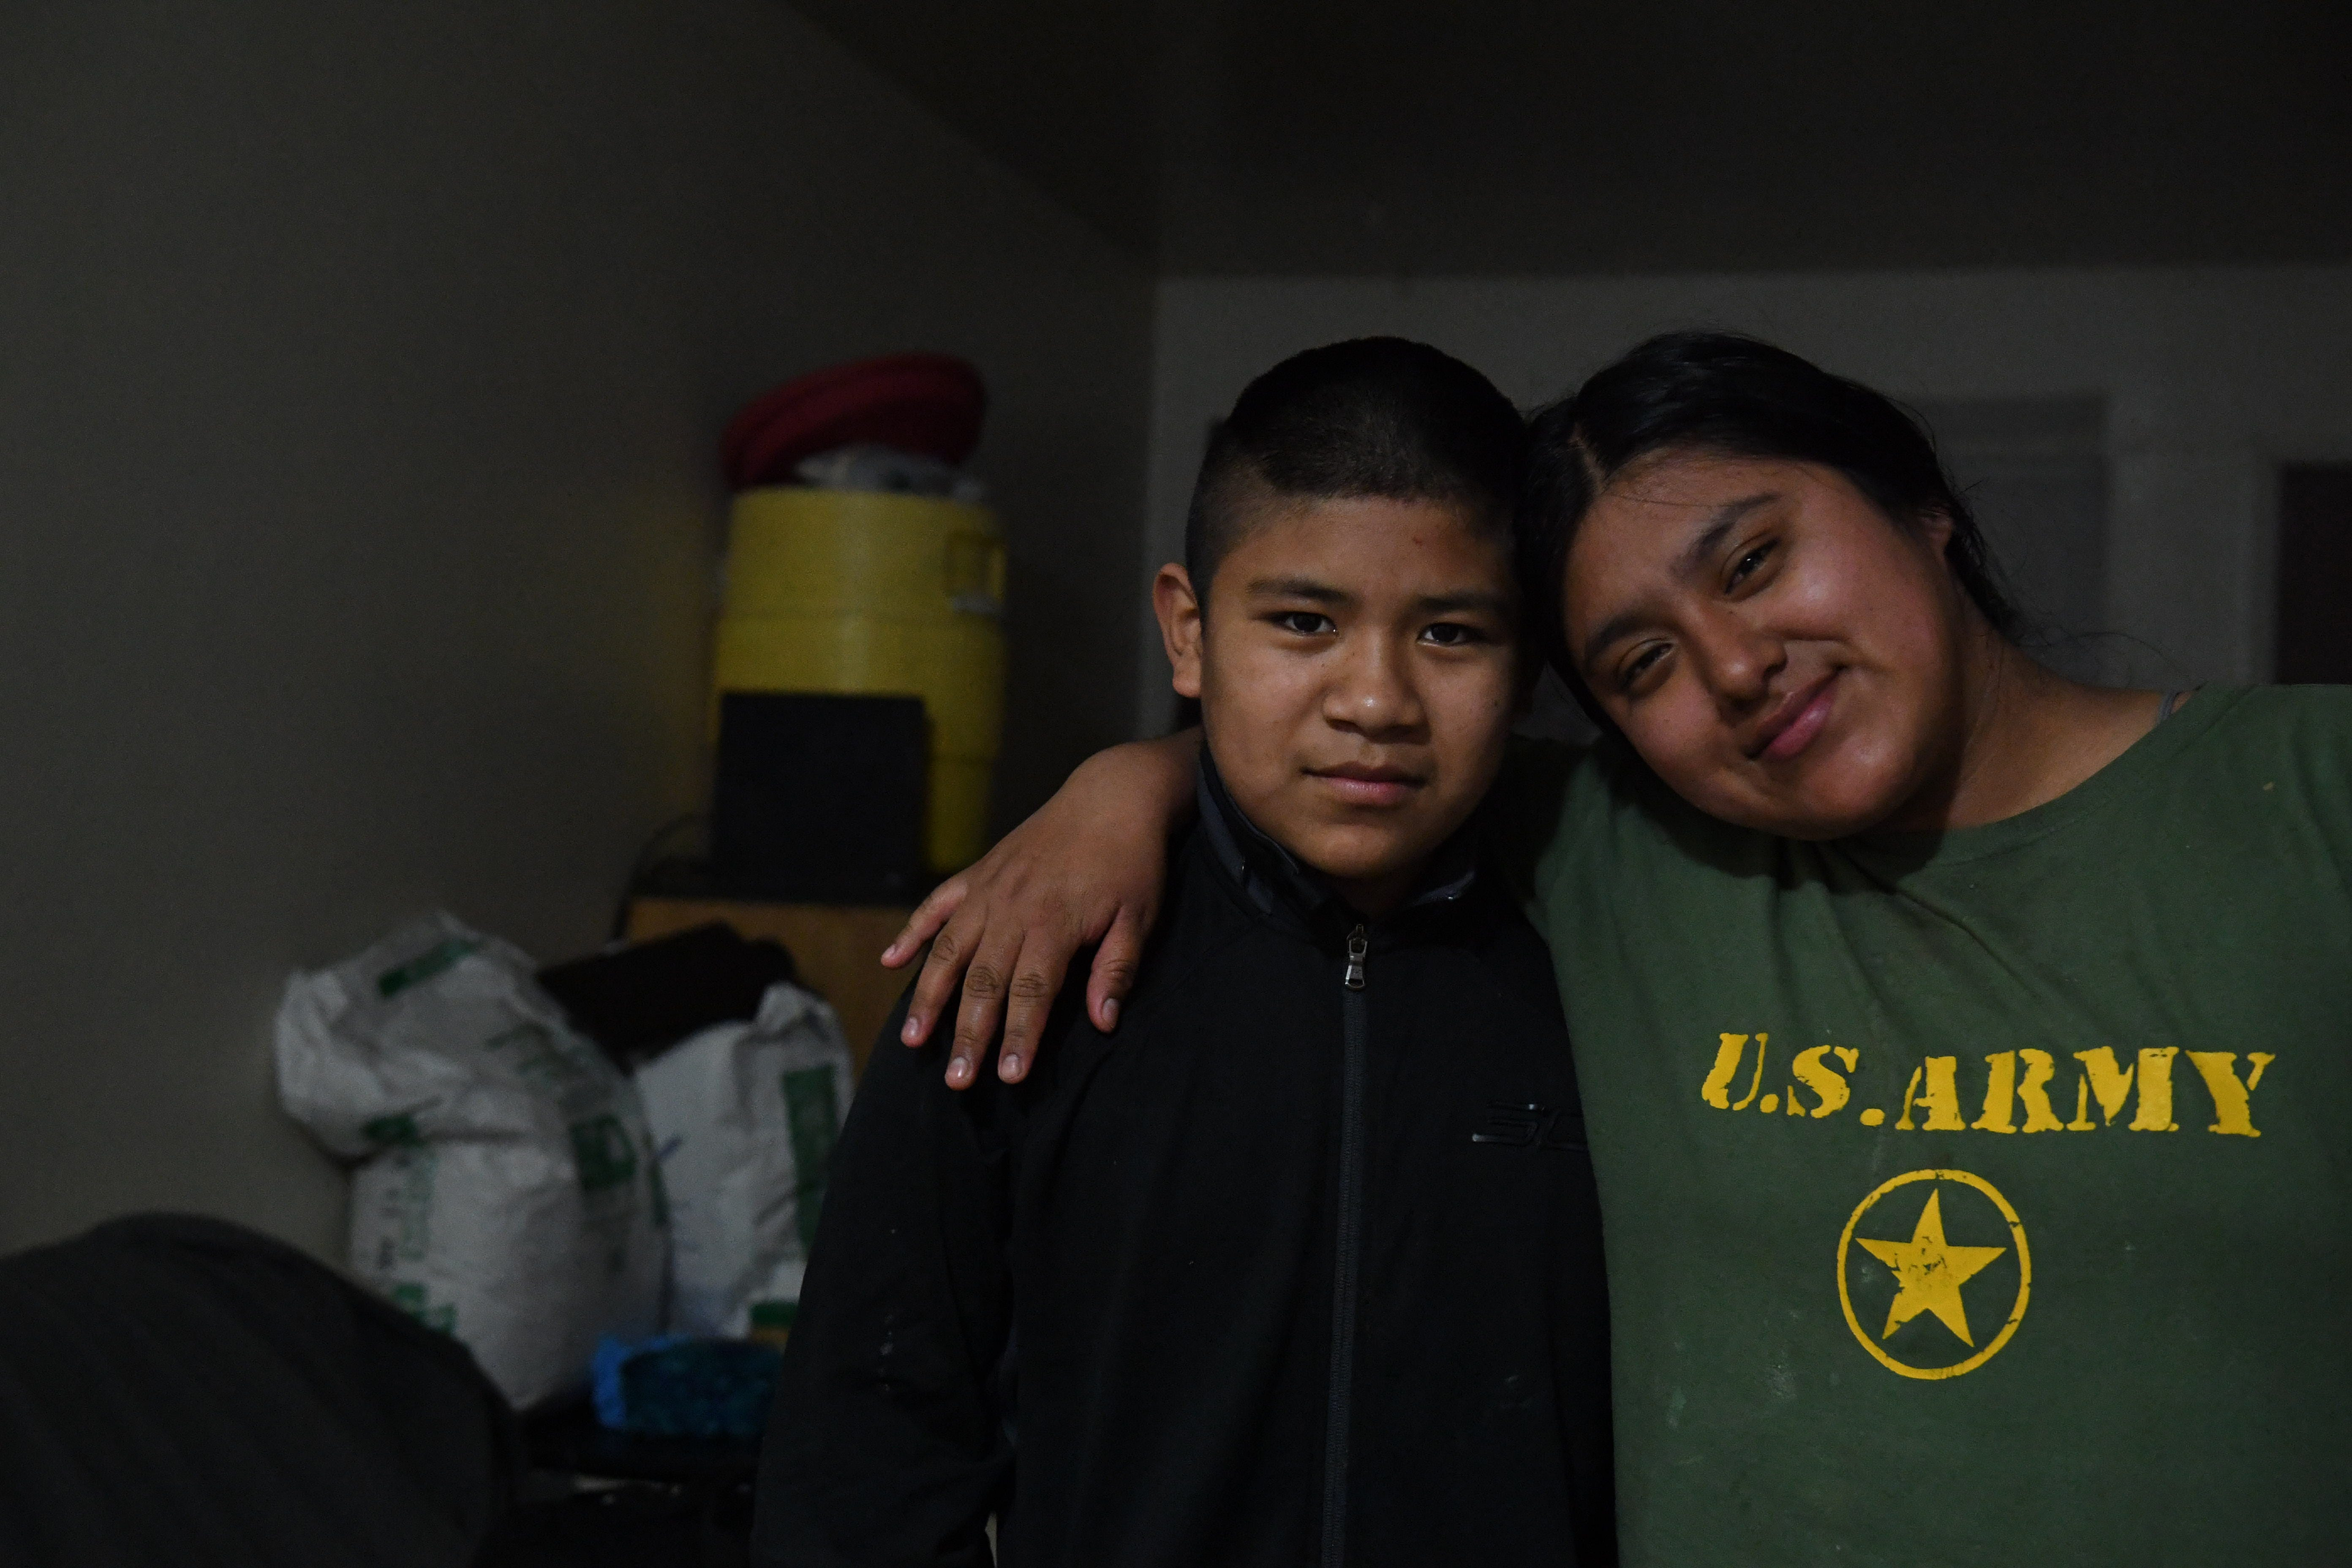 Aldo Salvador, left, and his sister Resi are photographed together inside their two room apartment on the north side of Salinas on Saturday, May 16, 2020.